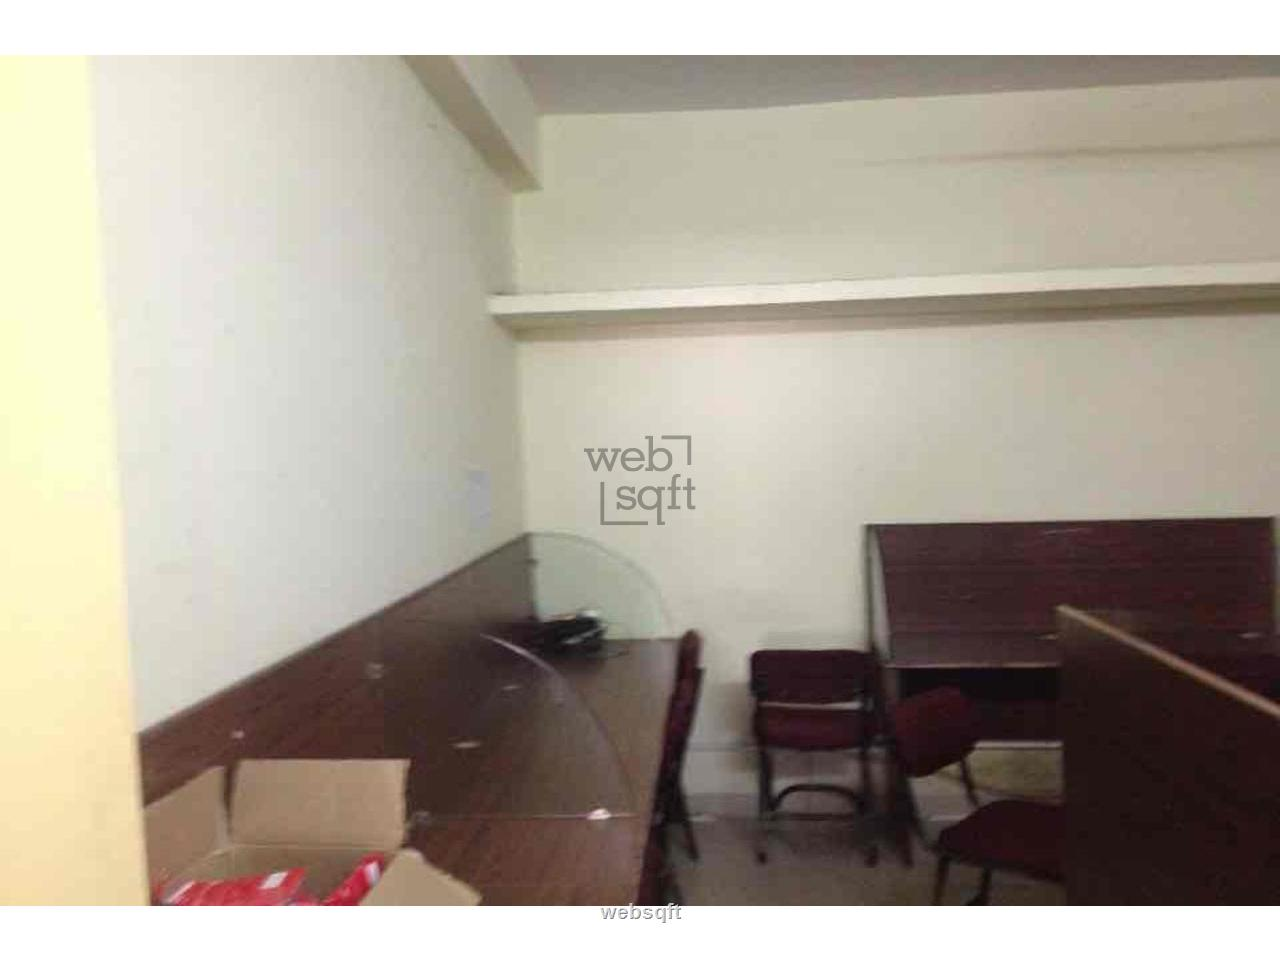 Websqft - Commercial Office Space - Property for Sale - in 2200Sq-ft/Ameerpet at Rs 11000000